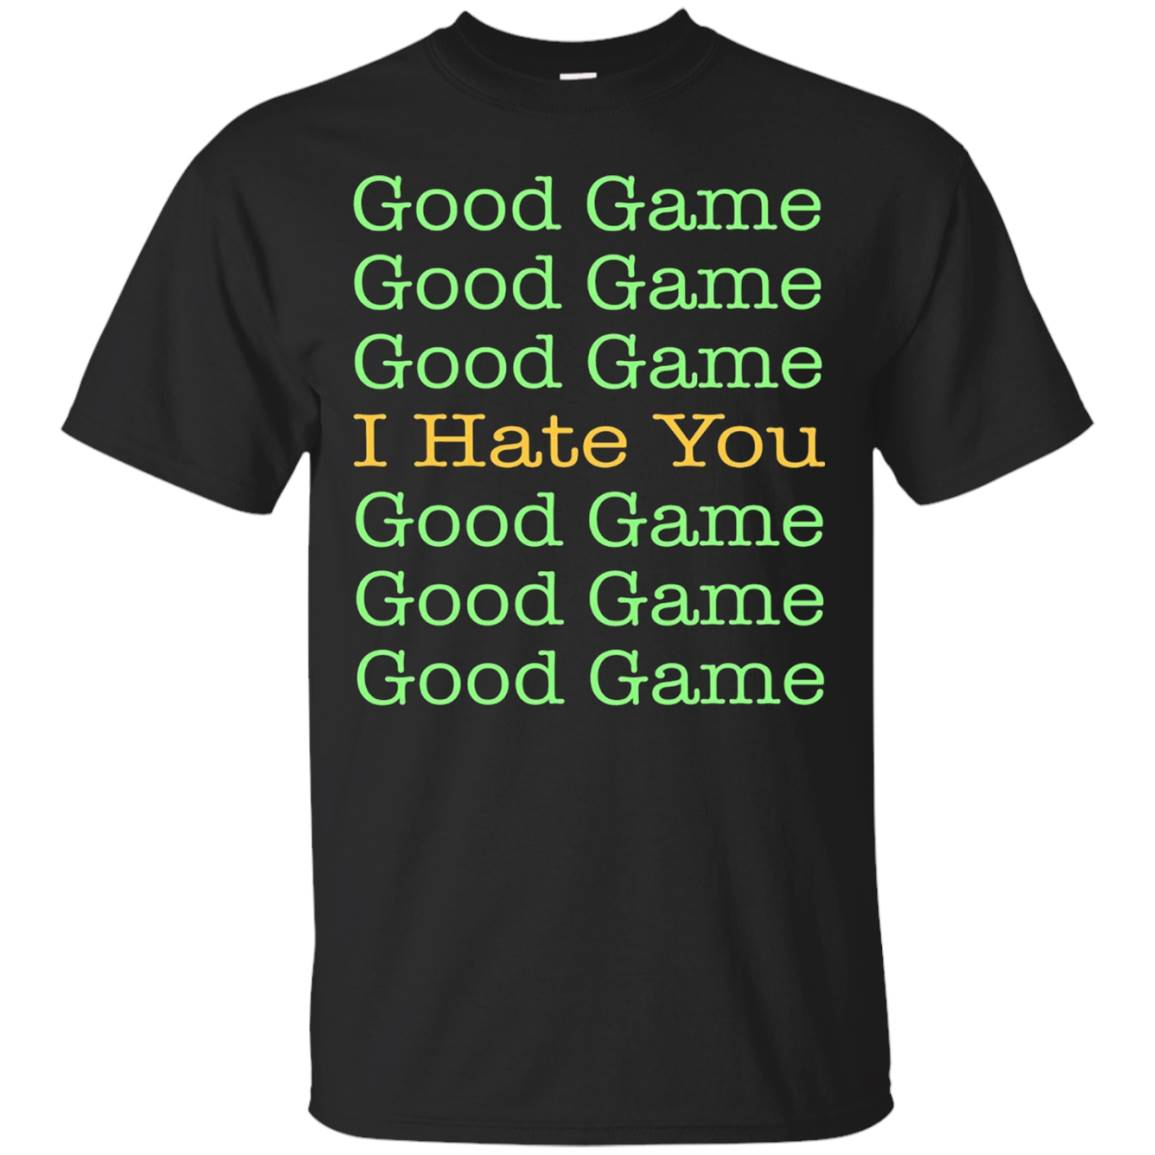 Good Game Good Game I Hate You t-shirt for the Sore Loser